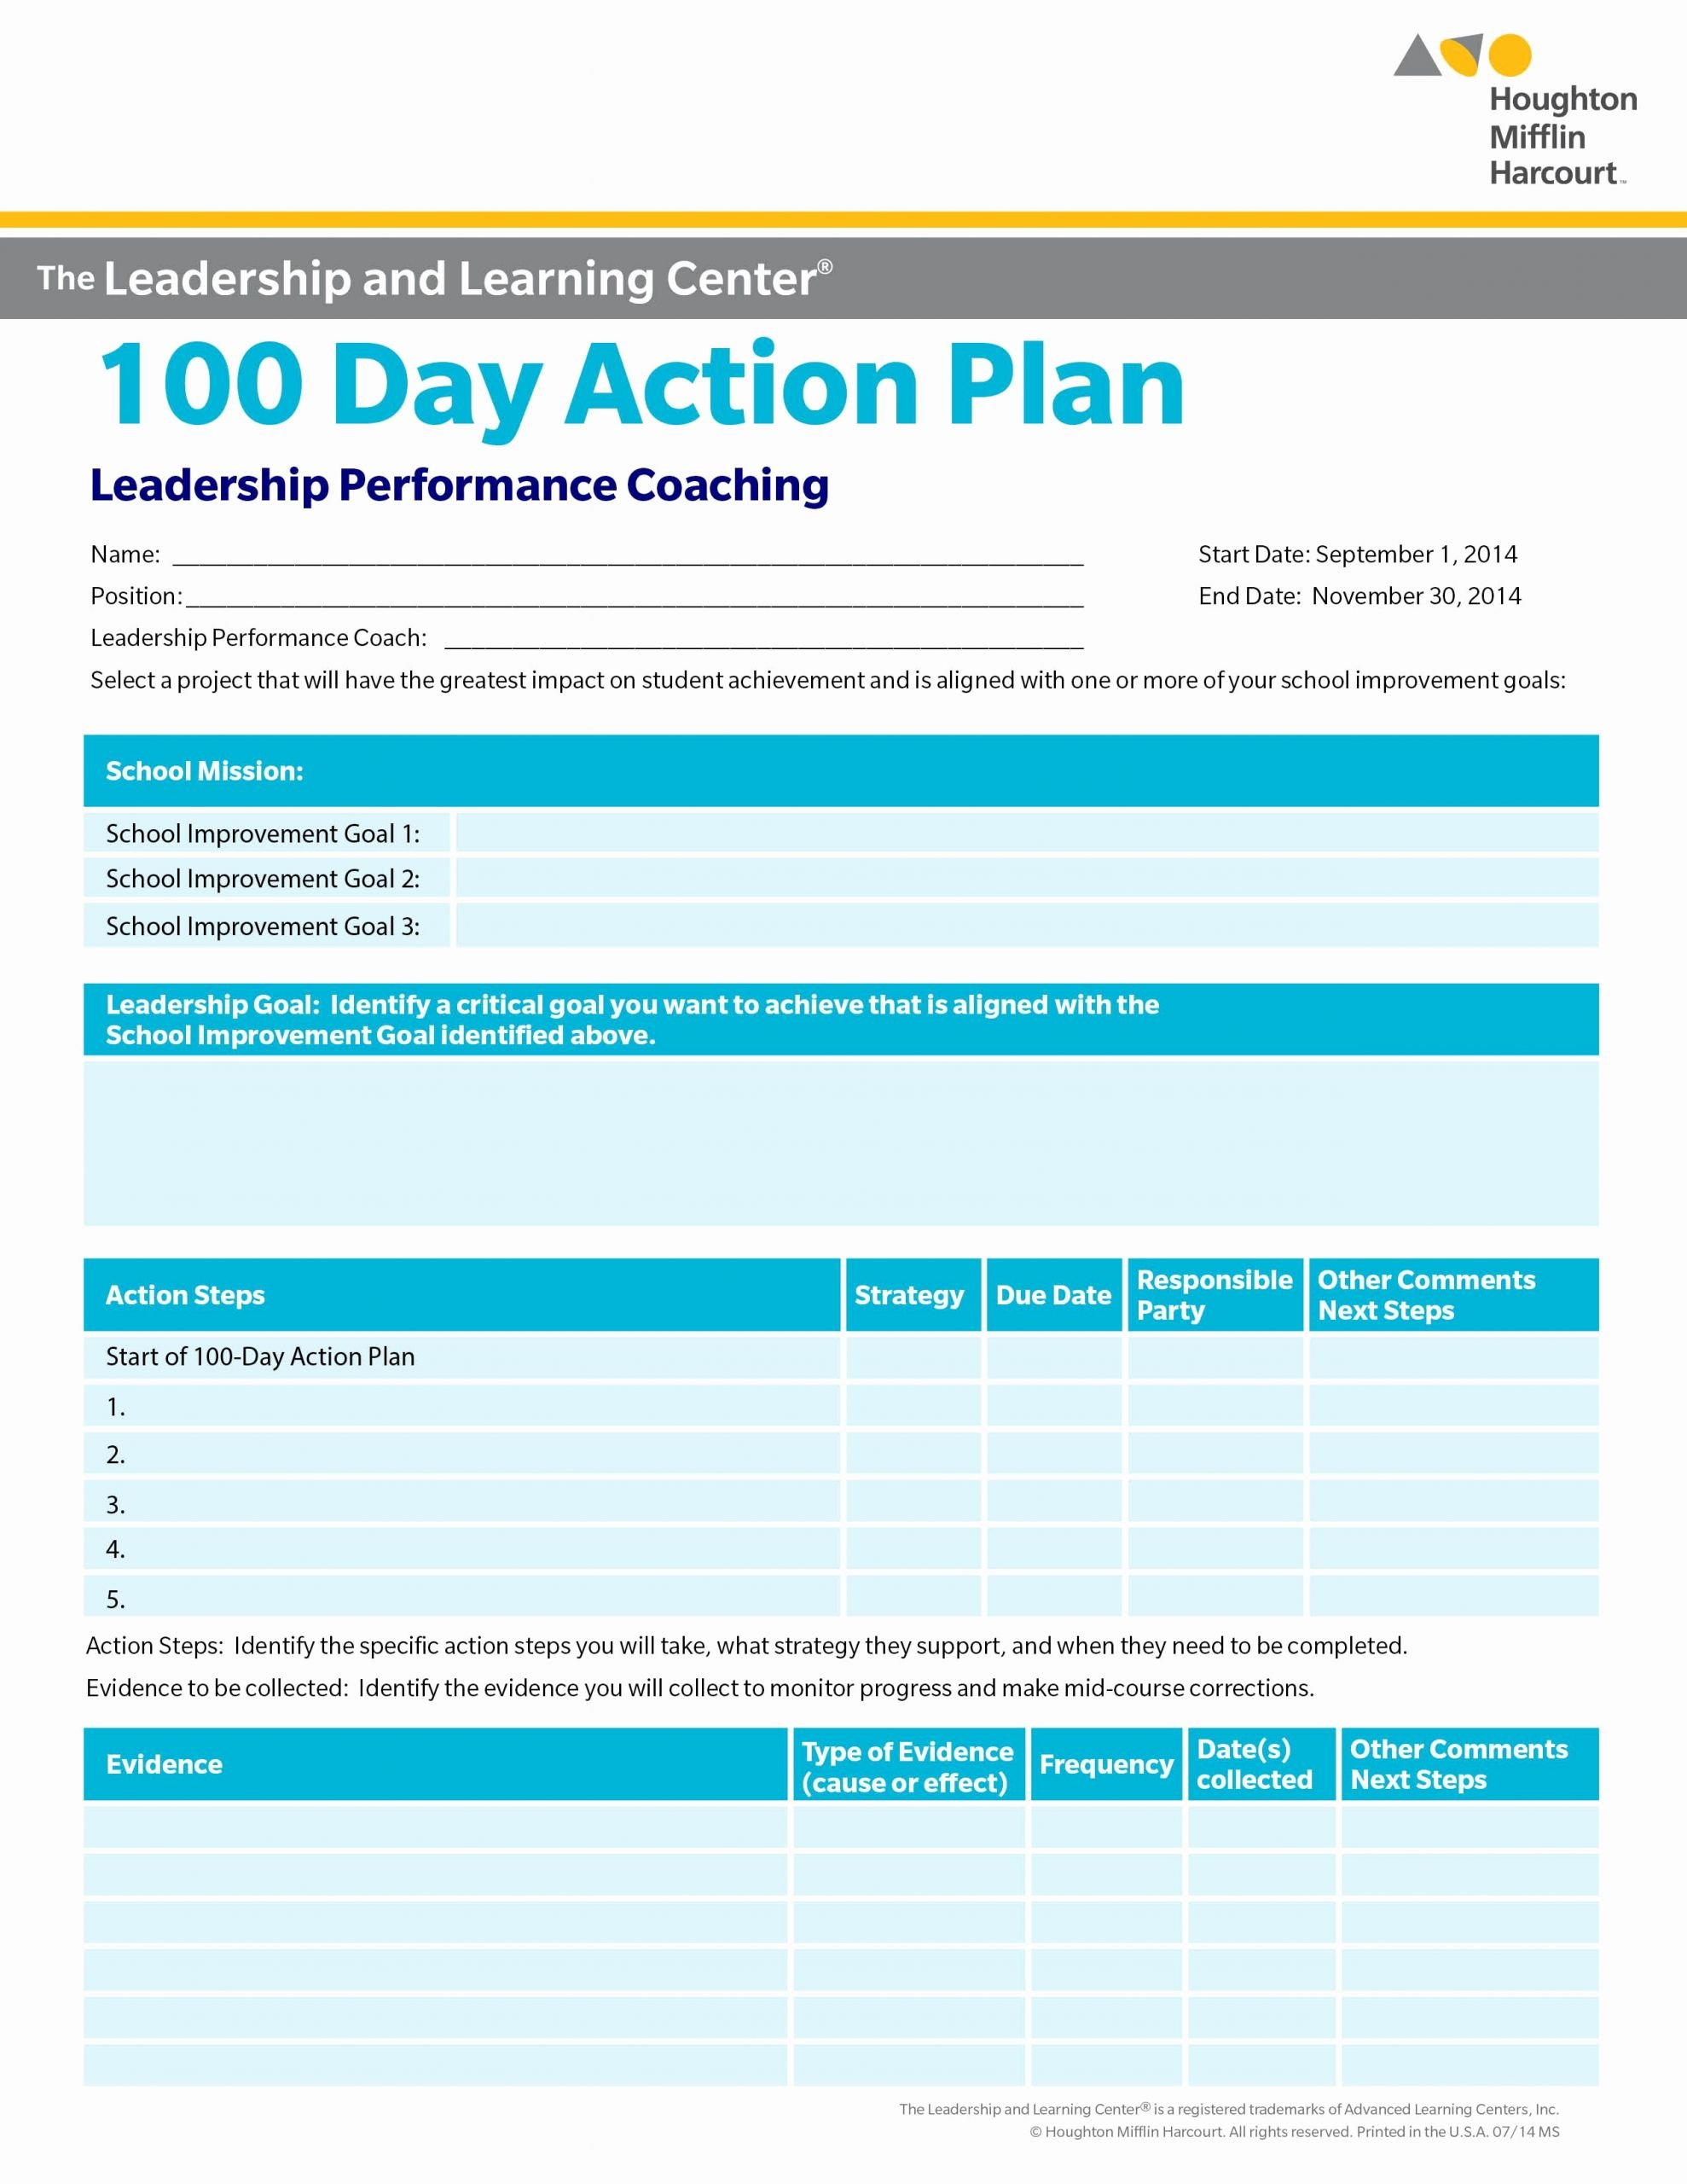 100 Day Plan Template Excel Luxury School Improvement 100 Day Action Plan Select A Goal for